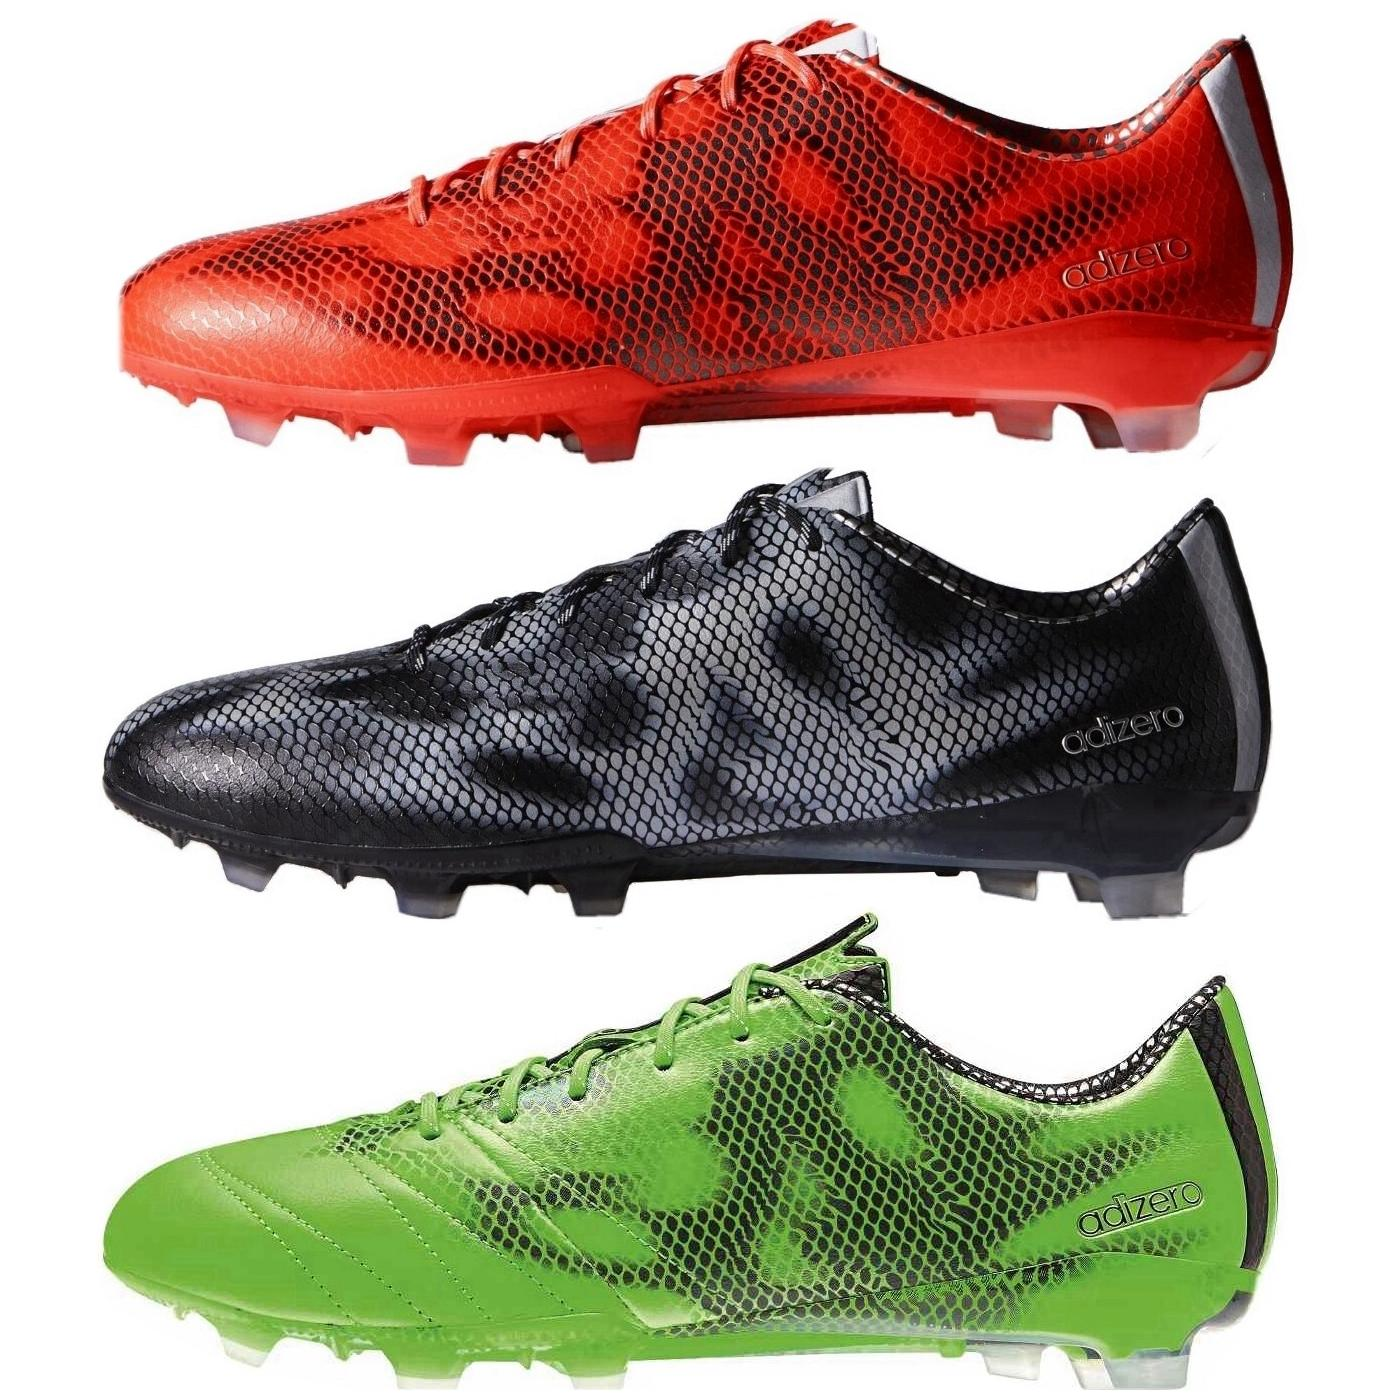 adidas f50 adizero fg synthetic